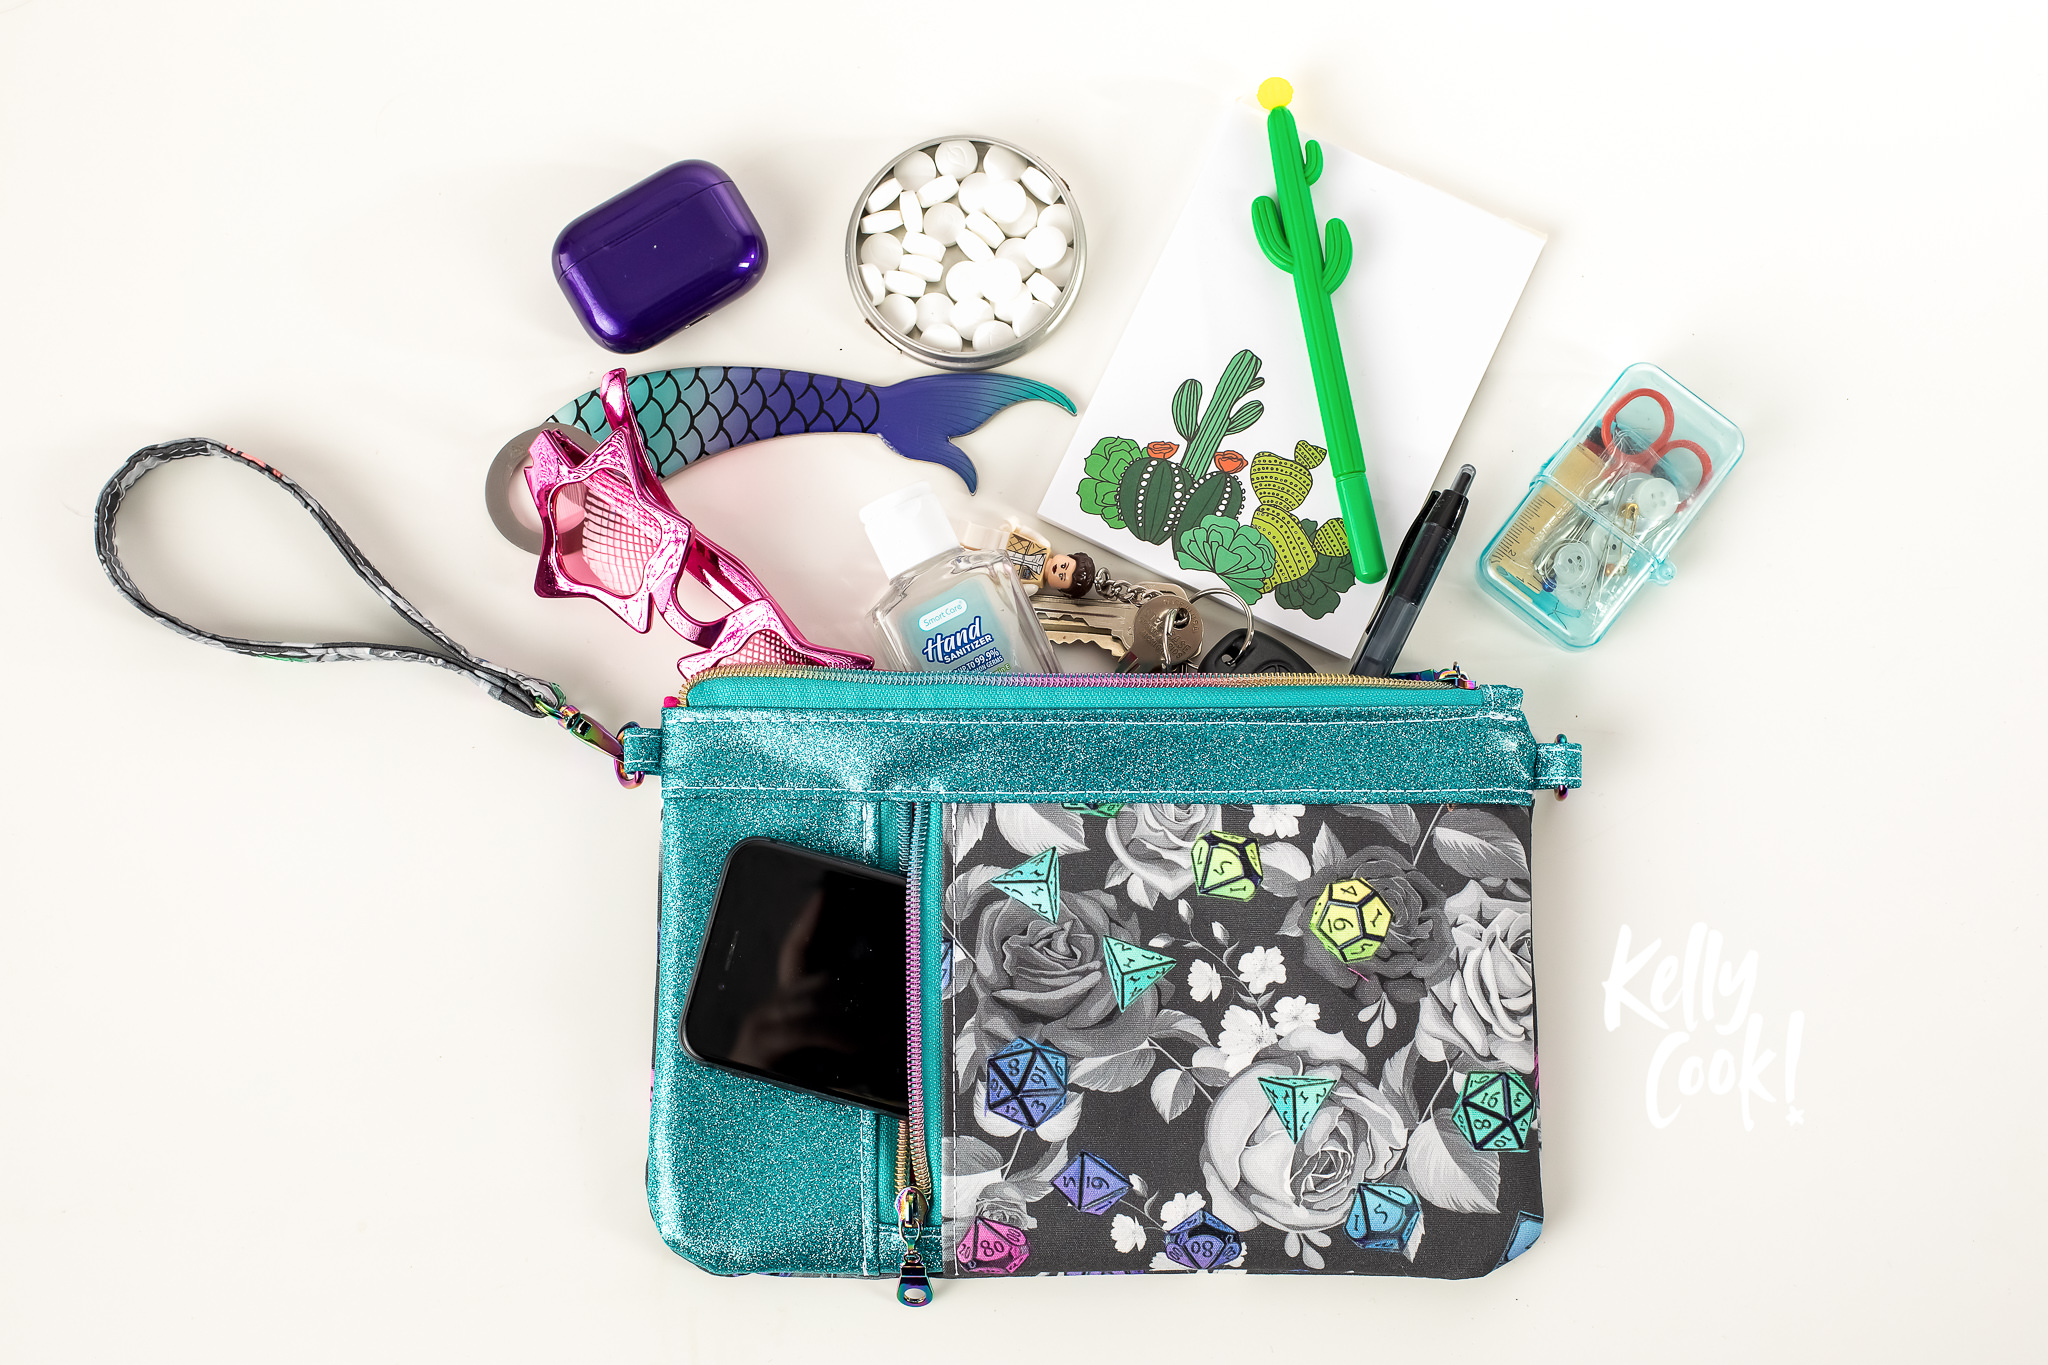 A geeky clutch with it's contents spilling onto the table